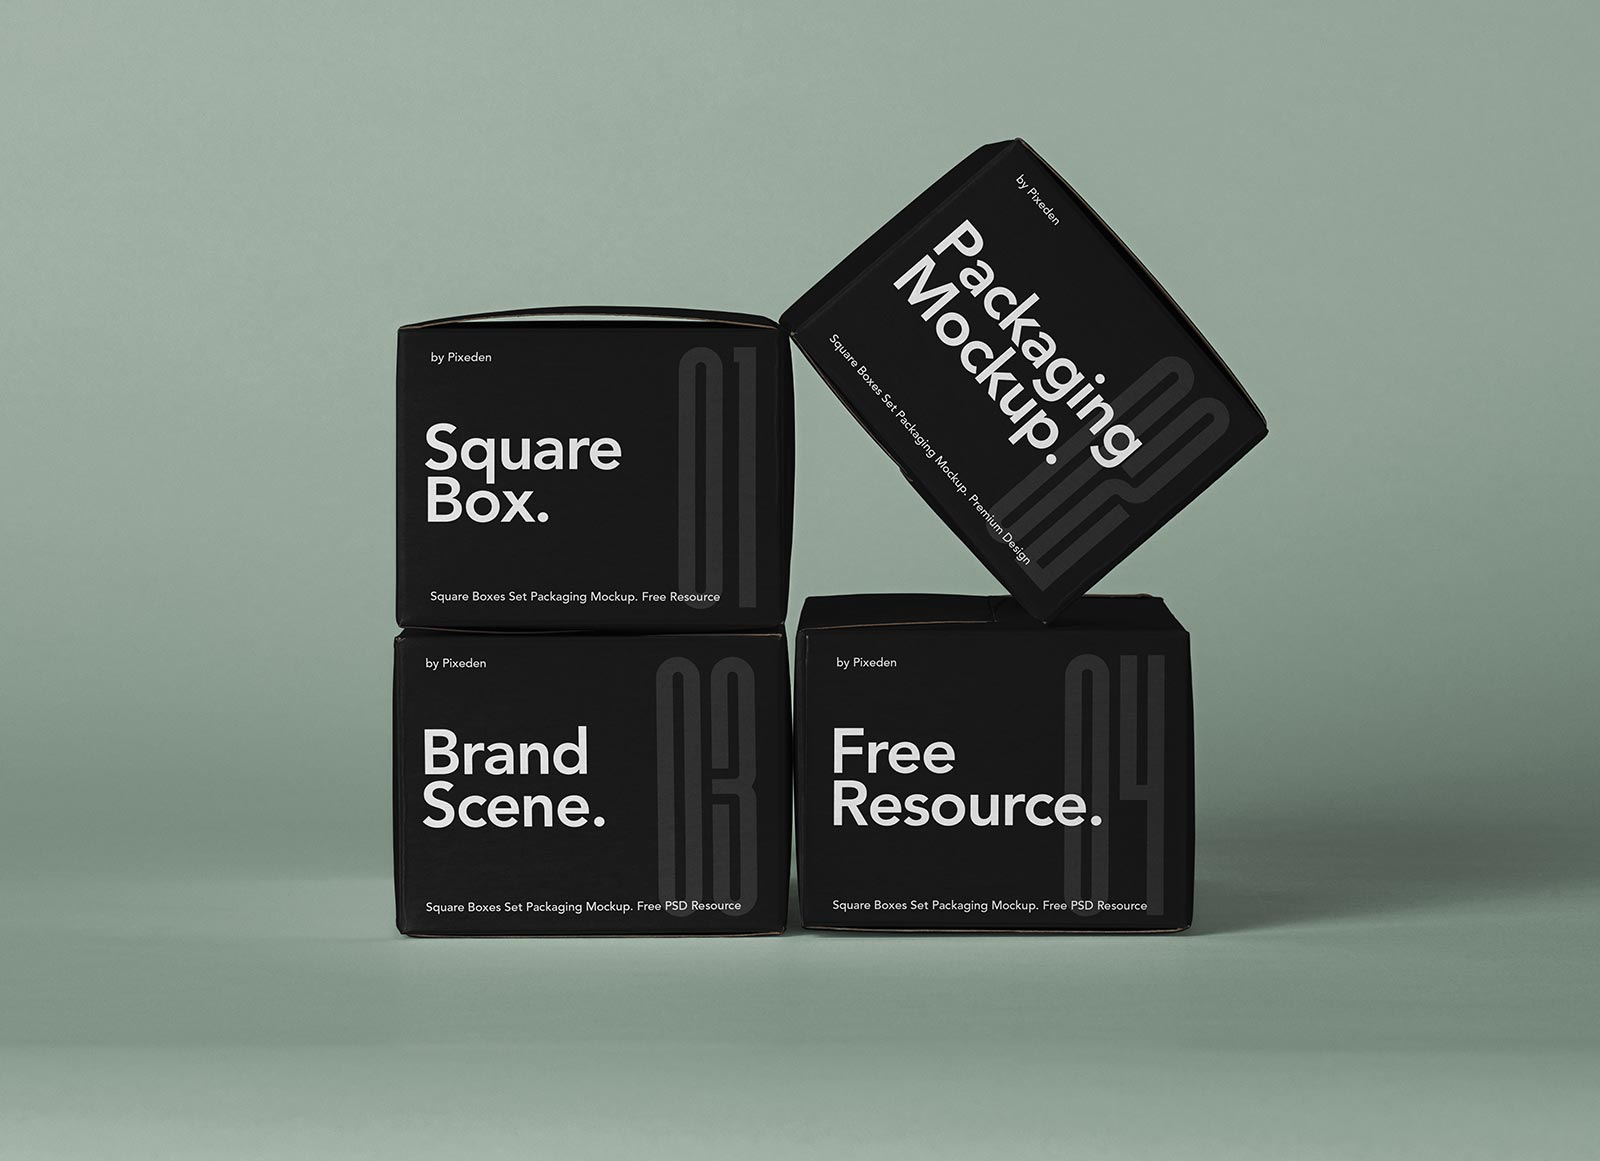 Free-Square-Boxes-Set-Packaging-Mockup-PSD